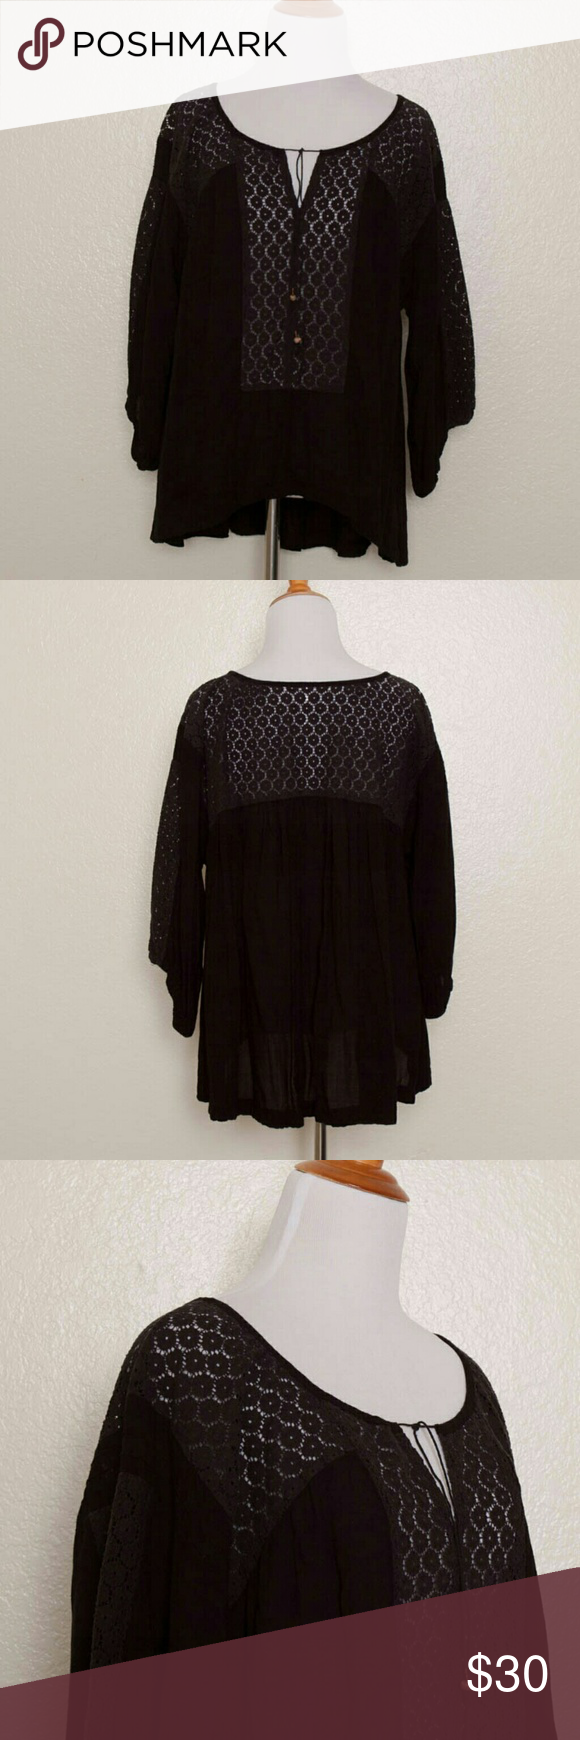 Free People Black Lace Inset Peasant Tunic Black, lace inset and semi-sheer swing tunic with tie at the neckline Elasticized sleeve cuffs 100% Rayon Lace: 70% Nylon, 30% Cotton Machine wash or dry clean Made in China  Measurements: Bust: 46? Waist: 48? Sleeve Length: 15? Overall Length (in front): 24? Overall Length (in back): 27?  Condition: Top is clean and shows minimal wear; no holes, stains, pulls, or pilling. Free People Tops Tunics